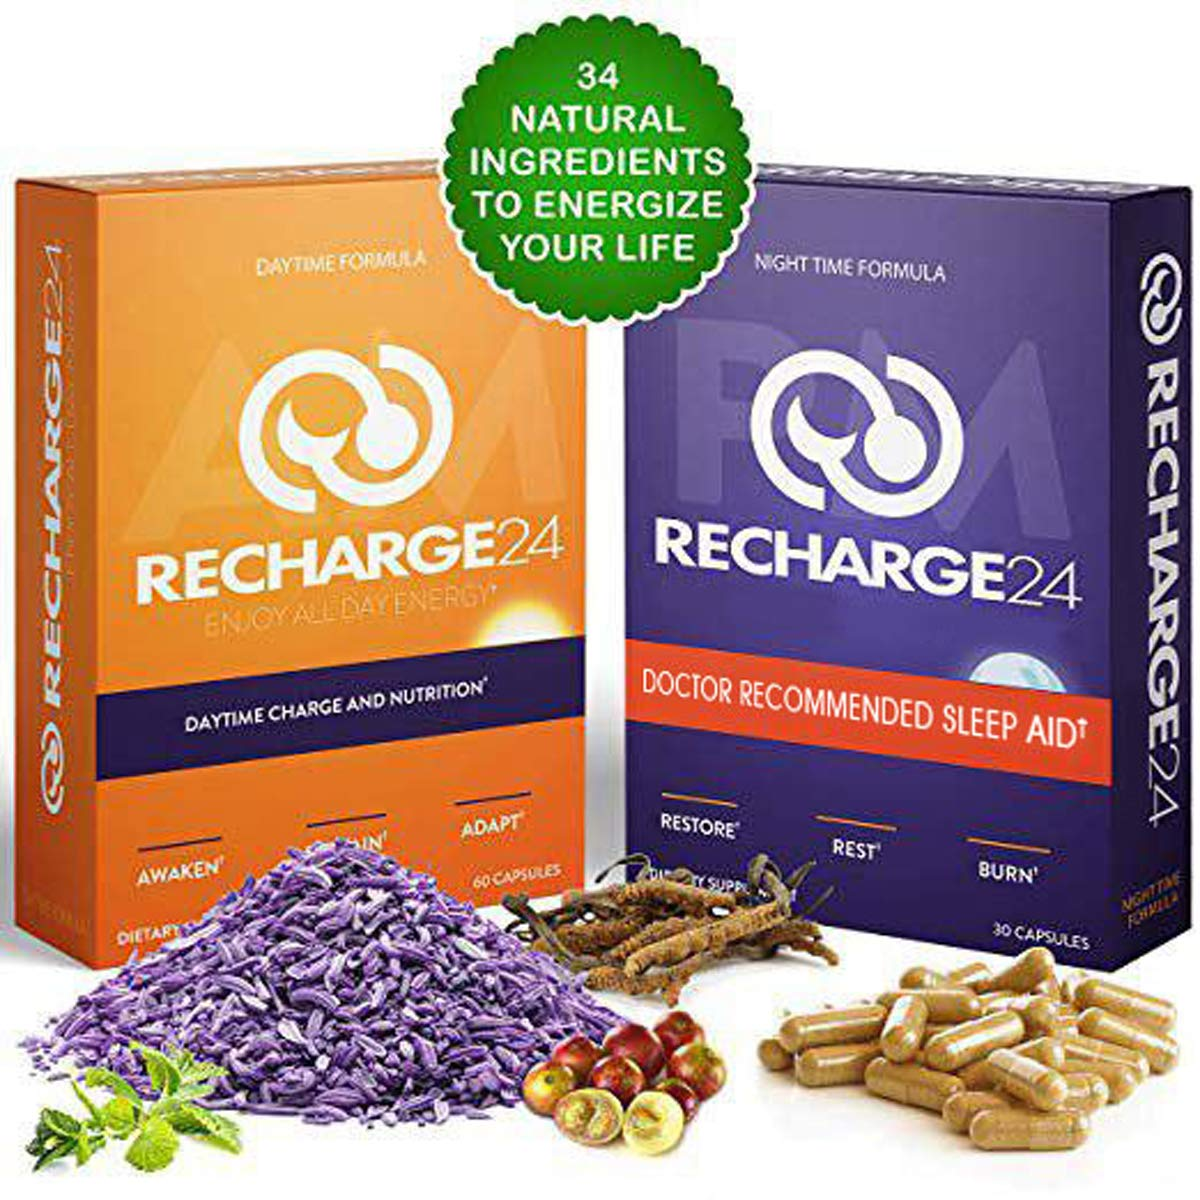 RECHARGE24 AM/PM Energy Pills and Sleep Aid, Non-Crash Sustained Performance, 100% Natural Herbal Blend with 200 mg Natural Caffeine, All Natural Sleeping Pills, 30 Day Supply by RECHARGE24